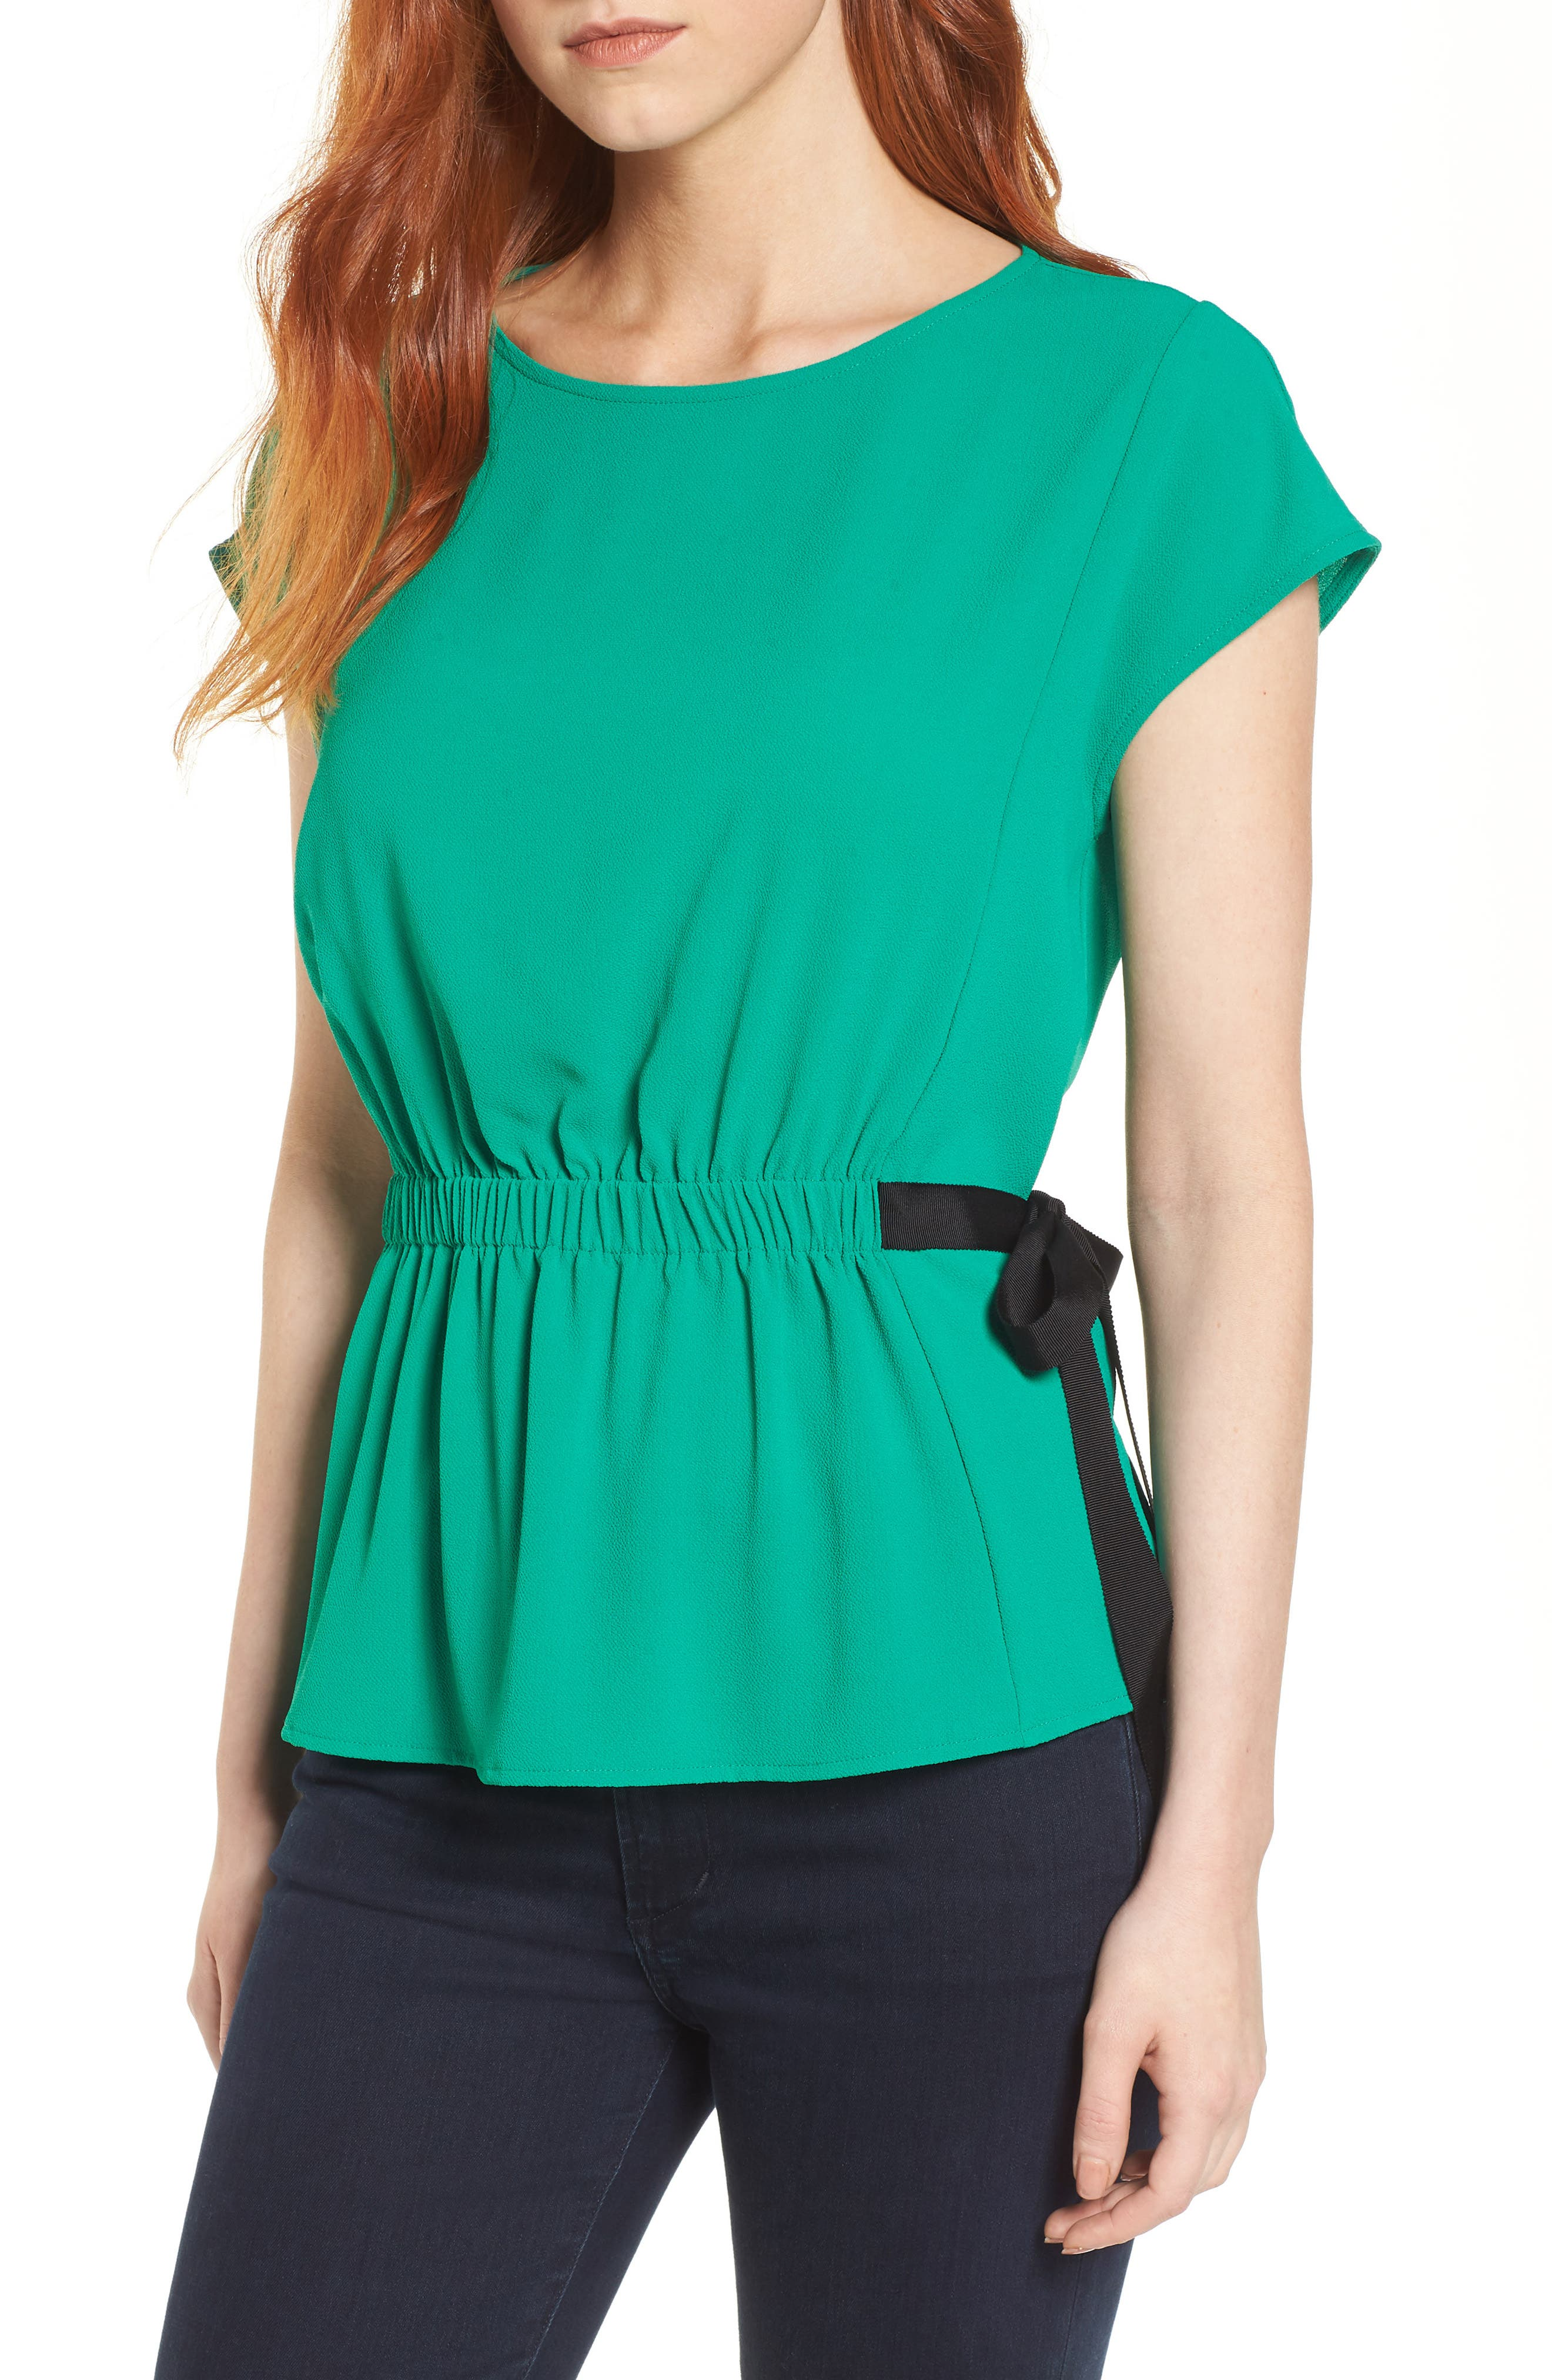 Gathered Waist Side Tie Top,                         Main,                         color, Kelly Green With Black Tie